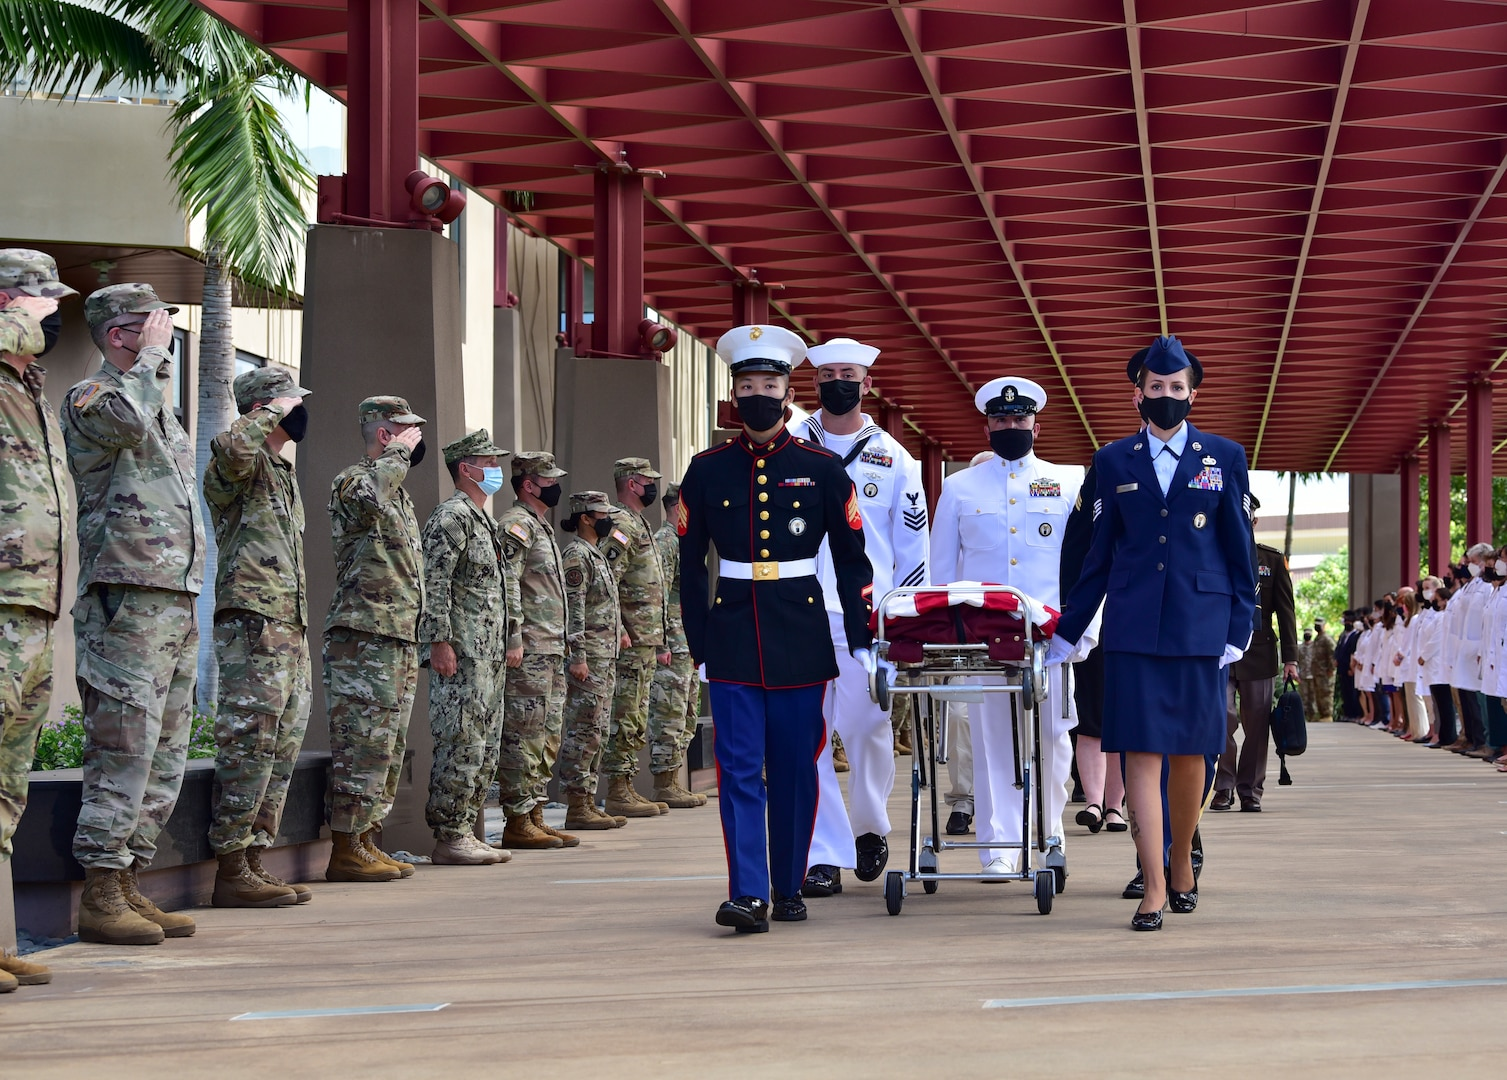 """Members of the Defense POW/MIA Accounting Agency (DPAA) render honors during a chain of custody event for the recently identified remains of Medal of Honor recipient U.S. Army Chaplain (Capt.) Emil J. Kapaun at Joint Base Pearl Harbor-Hickam, Hawaii, Sept. 21, 2021. In May of 2021, DPAA announced that Chaplain Kapaun's remains had been positively identified. His remains had previously been interred in a grave marked """"unknown"""" at the National Memorial Cemetery of the Pacific in Honolulu in 1956 and had been disinterred in 2019 as part of DPAA's Korean War Disinterment Project. DPAA's mission is to achieve the fullest possible accounting for missing and unaccounted-for U.S. personnel to their families and our nation. (U.S. Air Force photo by Staff Sgt. Apryl Hall)"""